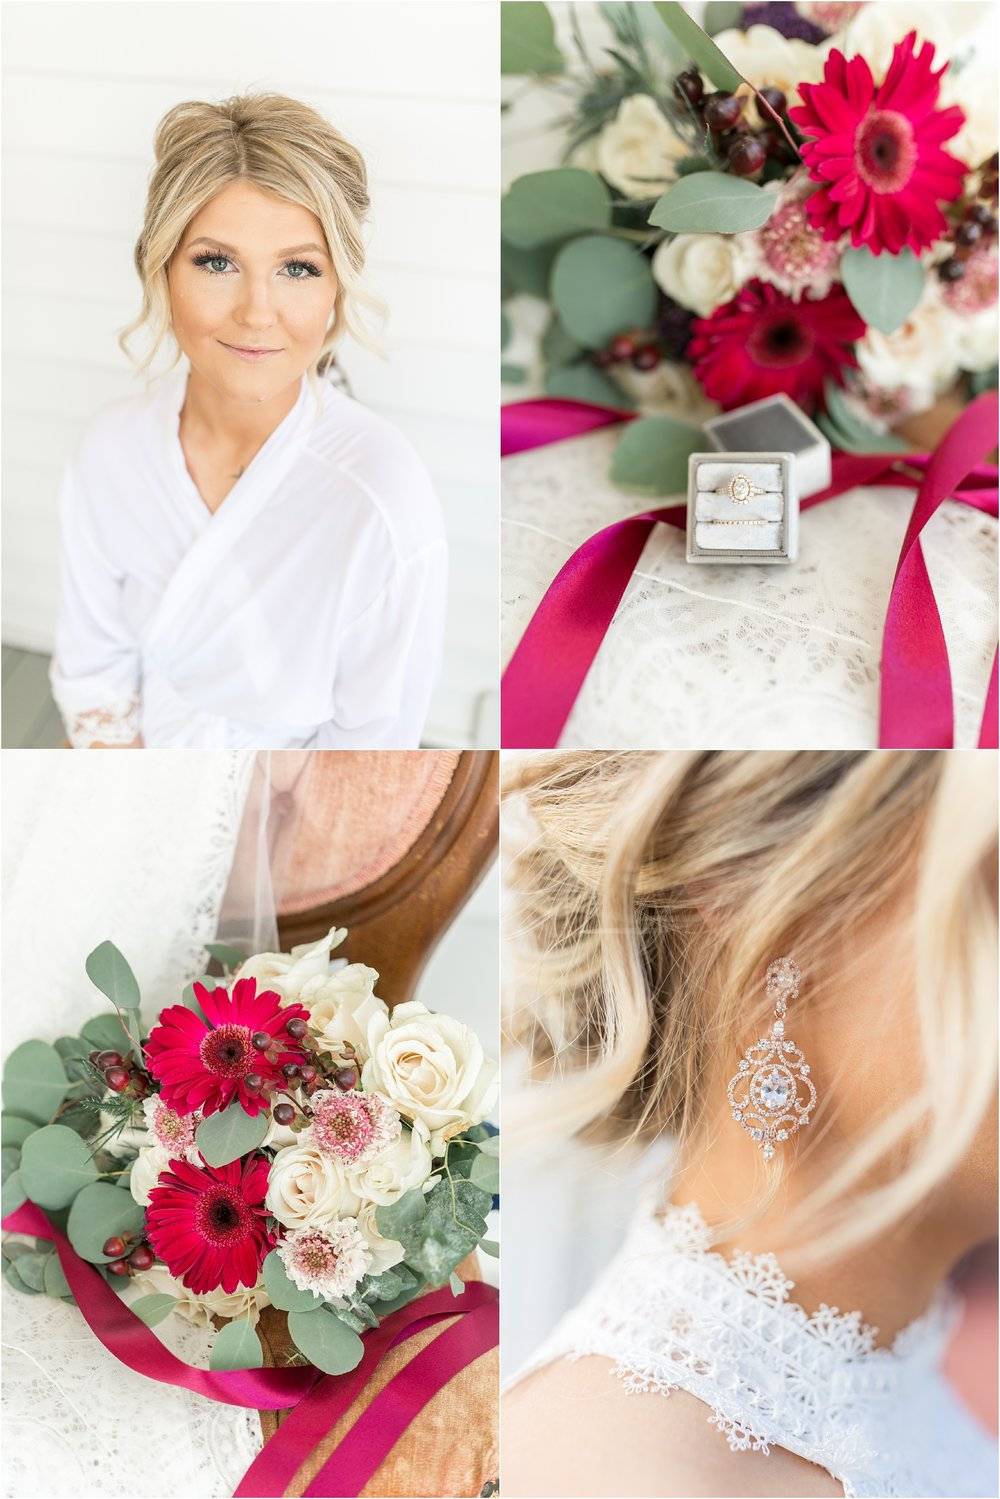 Savannah Eve Photography- Hinton-Davis Wedding- Sneak Peek-7.jpg